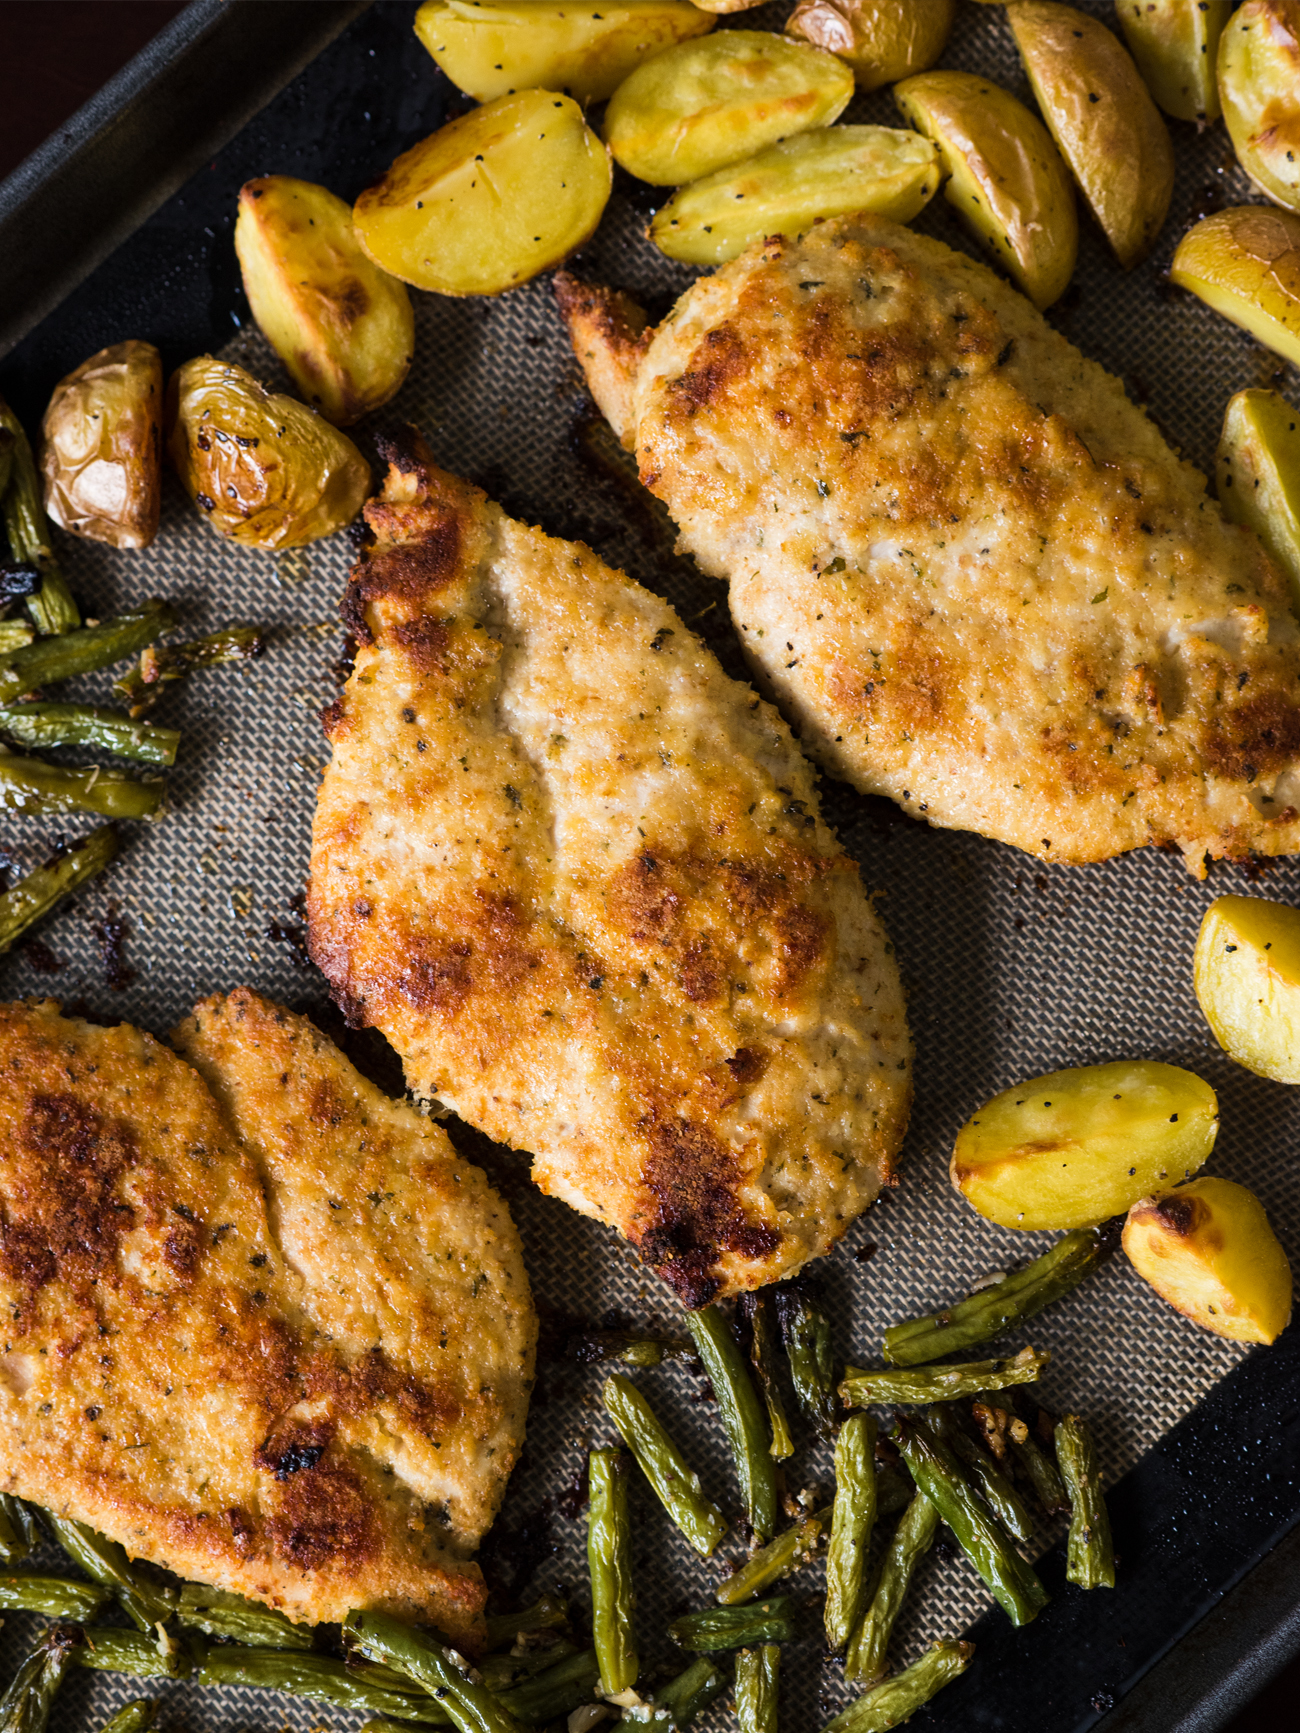 Sheet Pan Lemon Parmesan Chicken Vertical 4